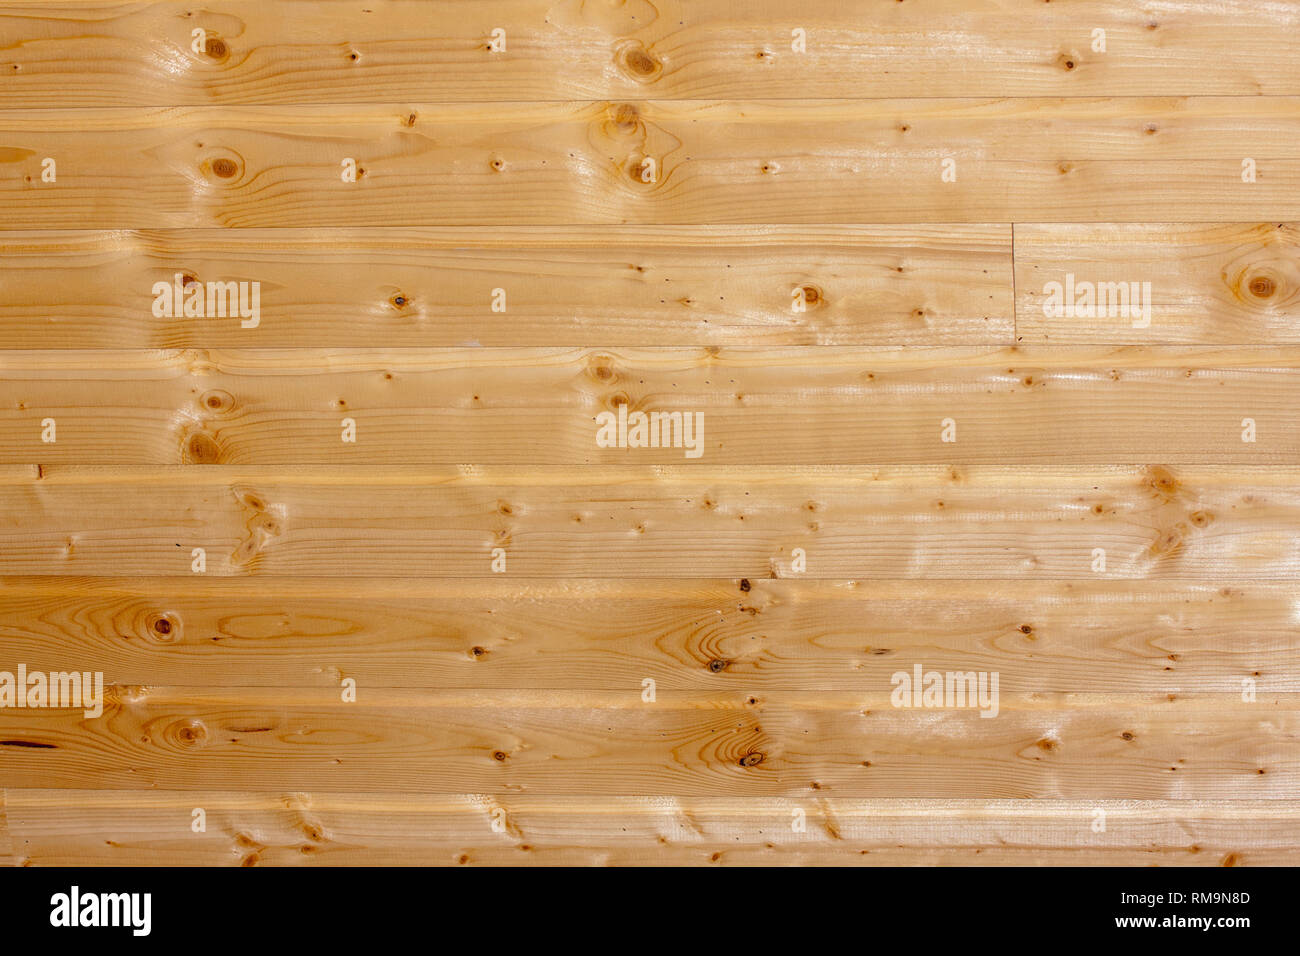 Pine wood planks with spots and patterns - Stock Image